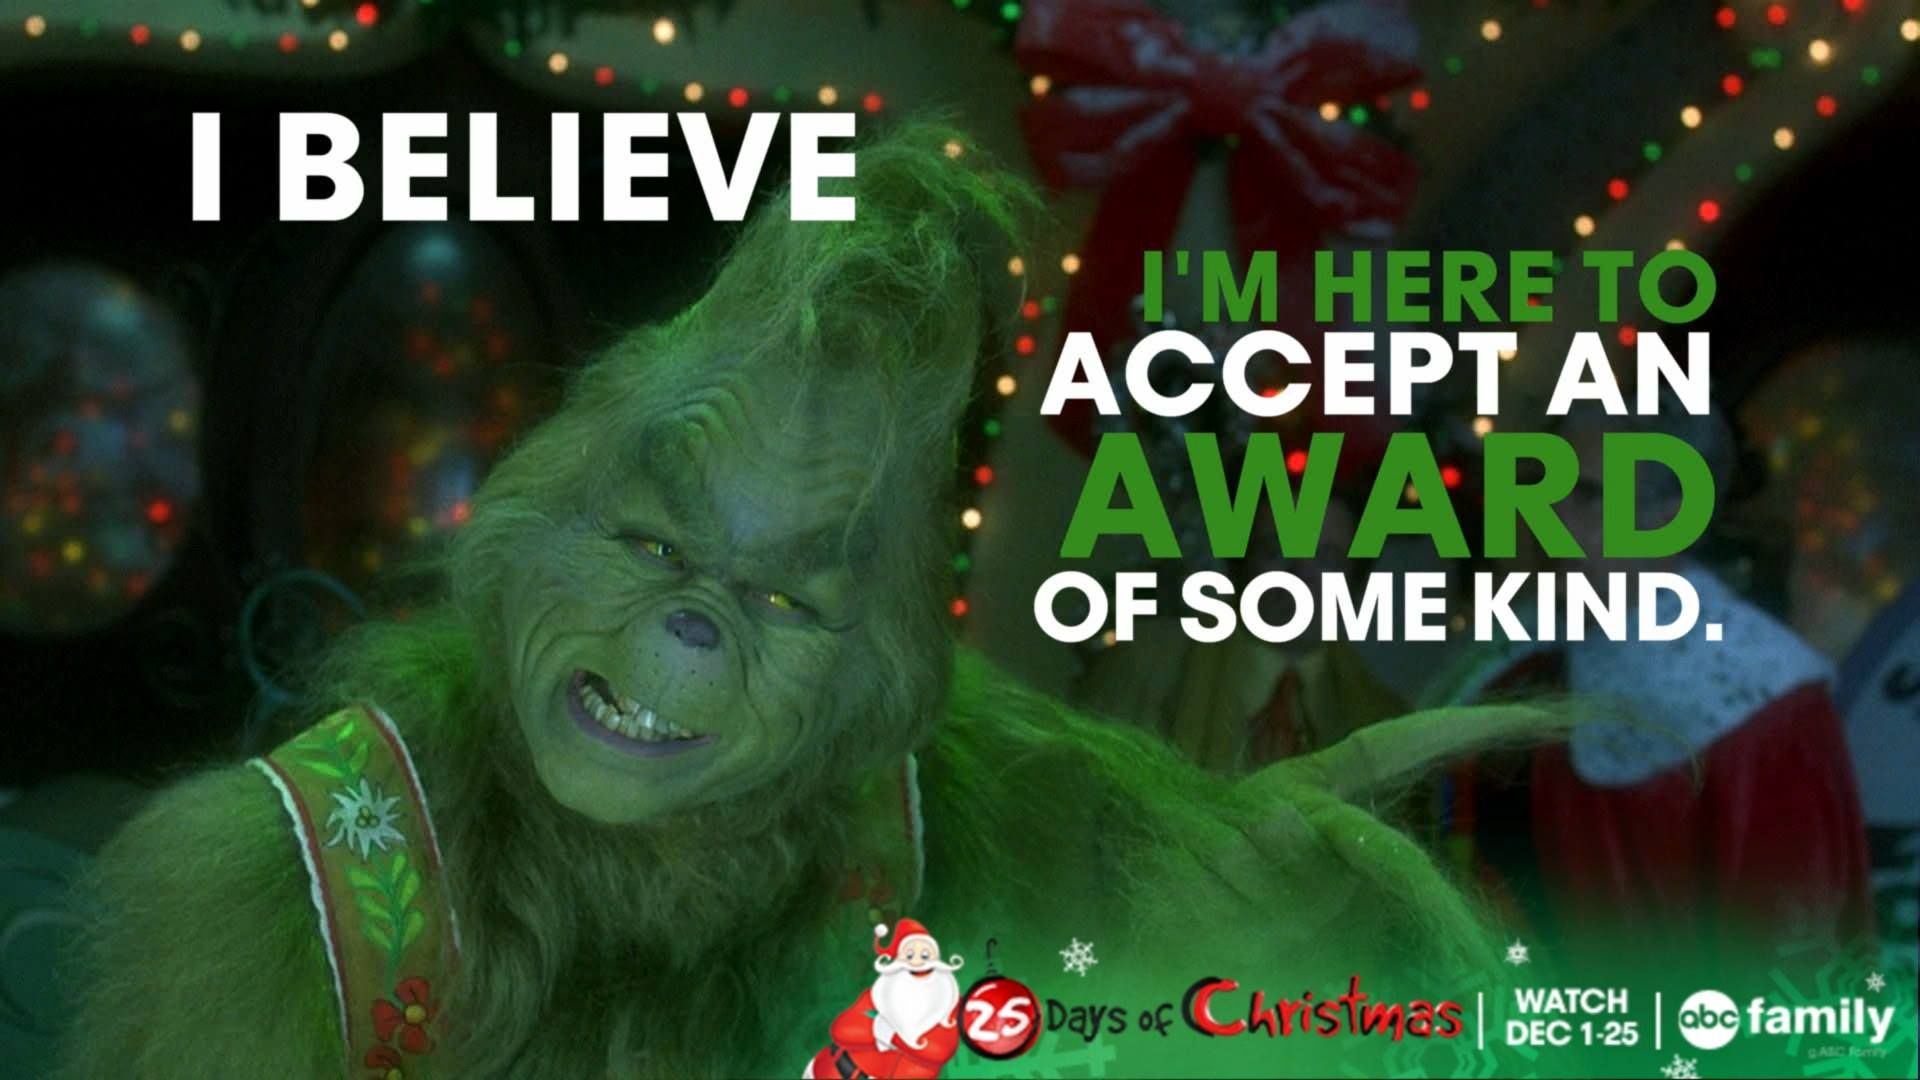 How did you guys like watching the Grinch last night? Here